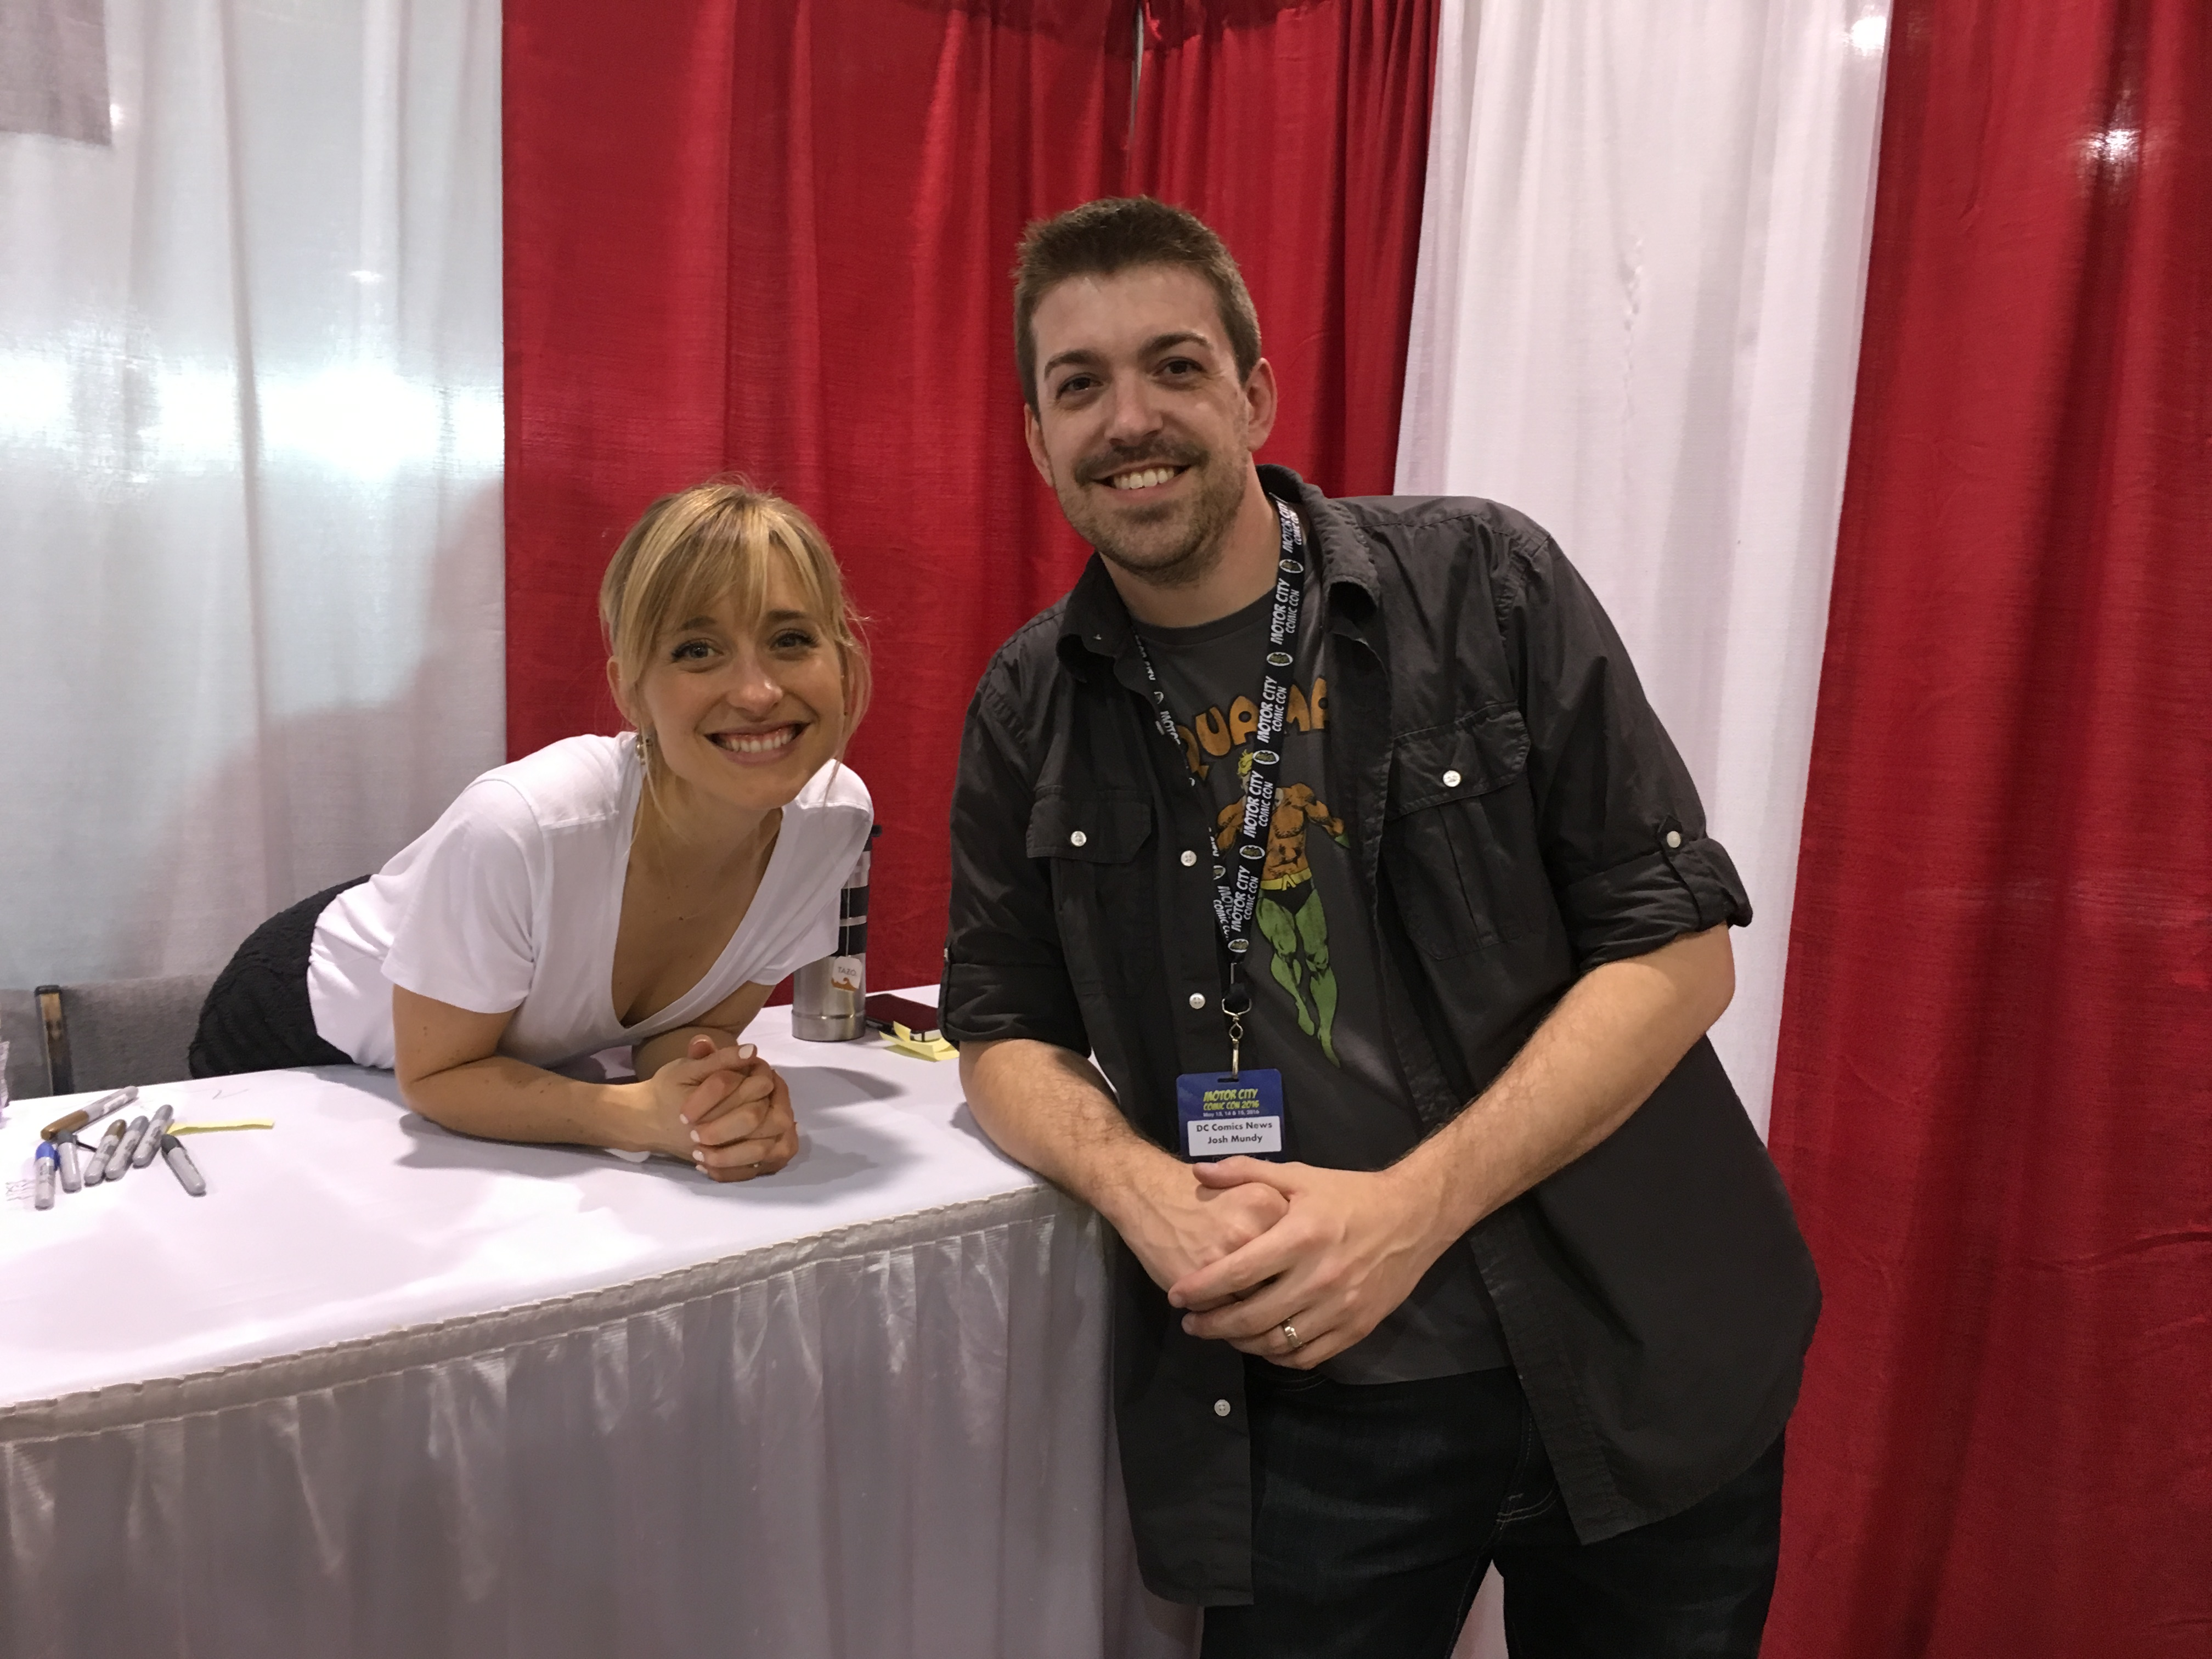 Allison Mack of Smallville fame and I.